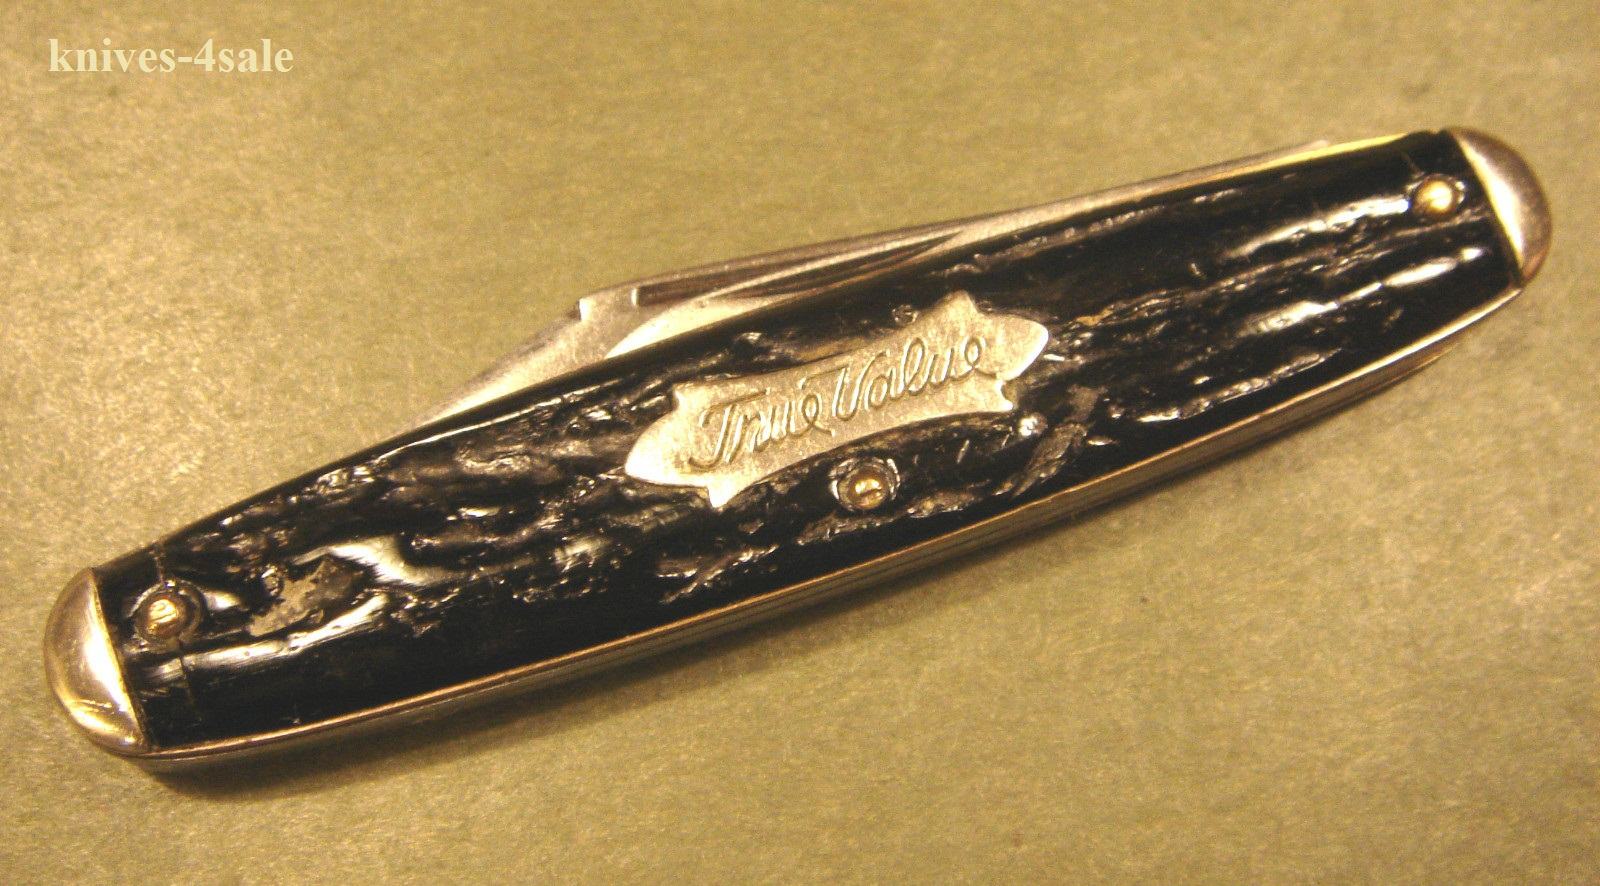 Antique Knife Weapons Antiques & Collectibles